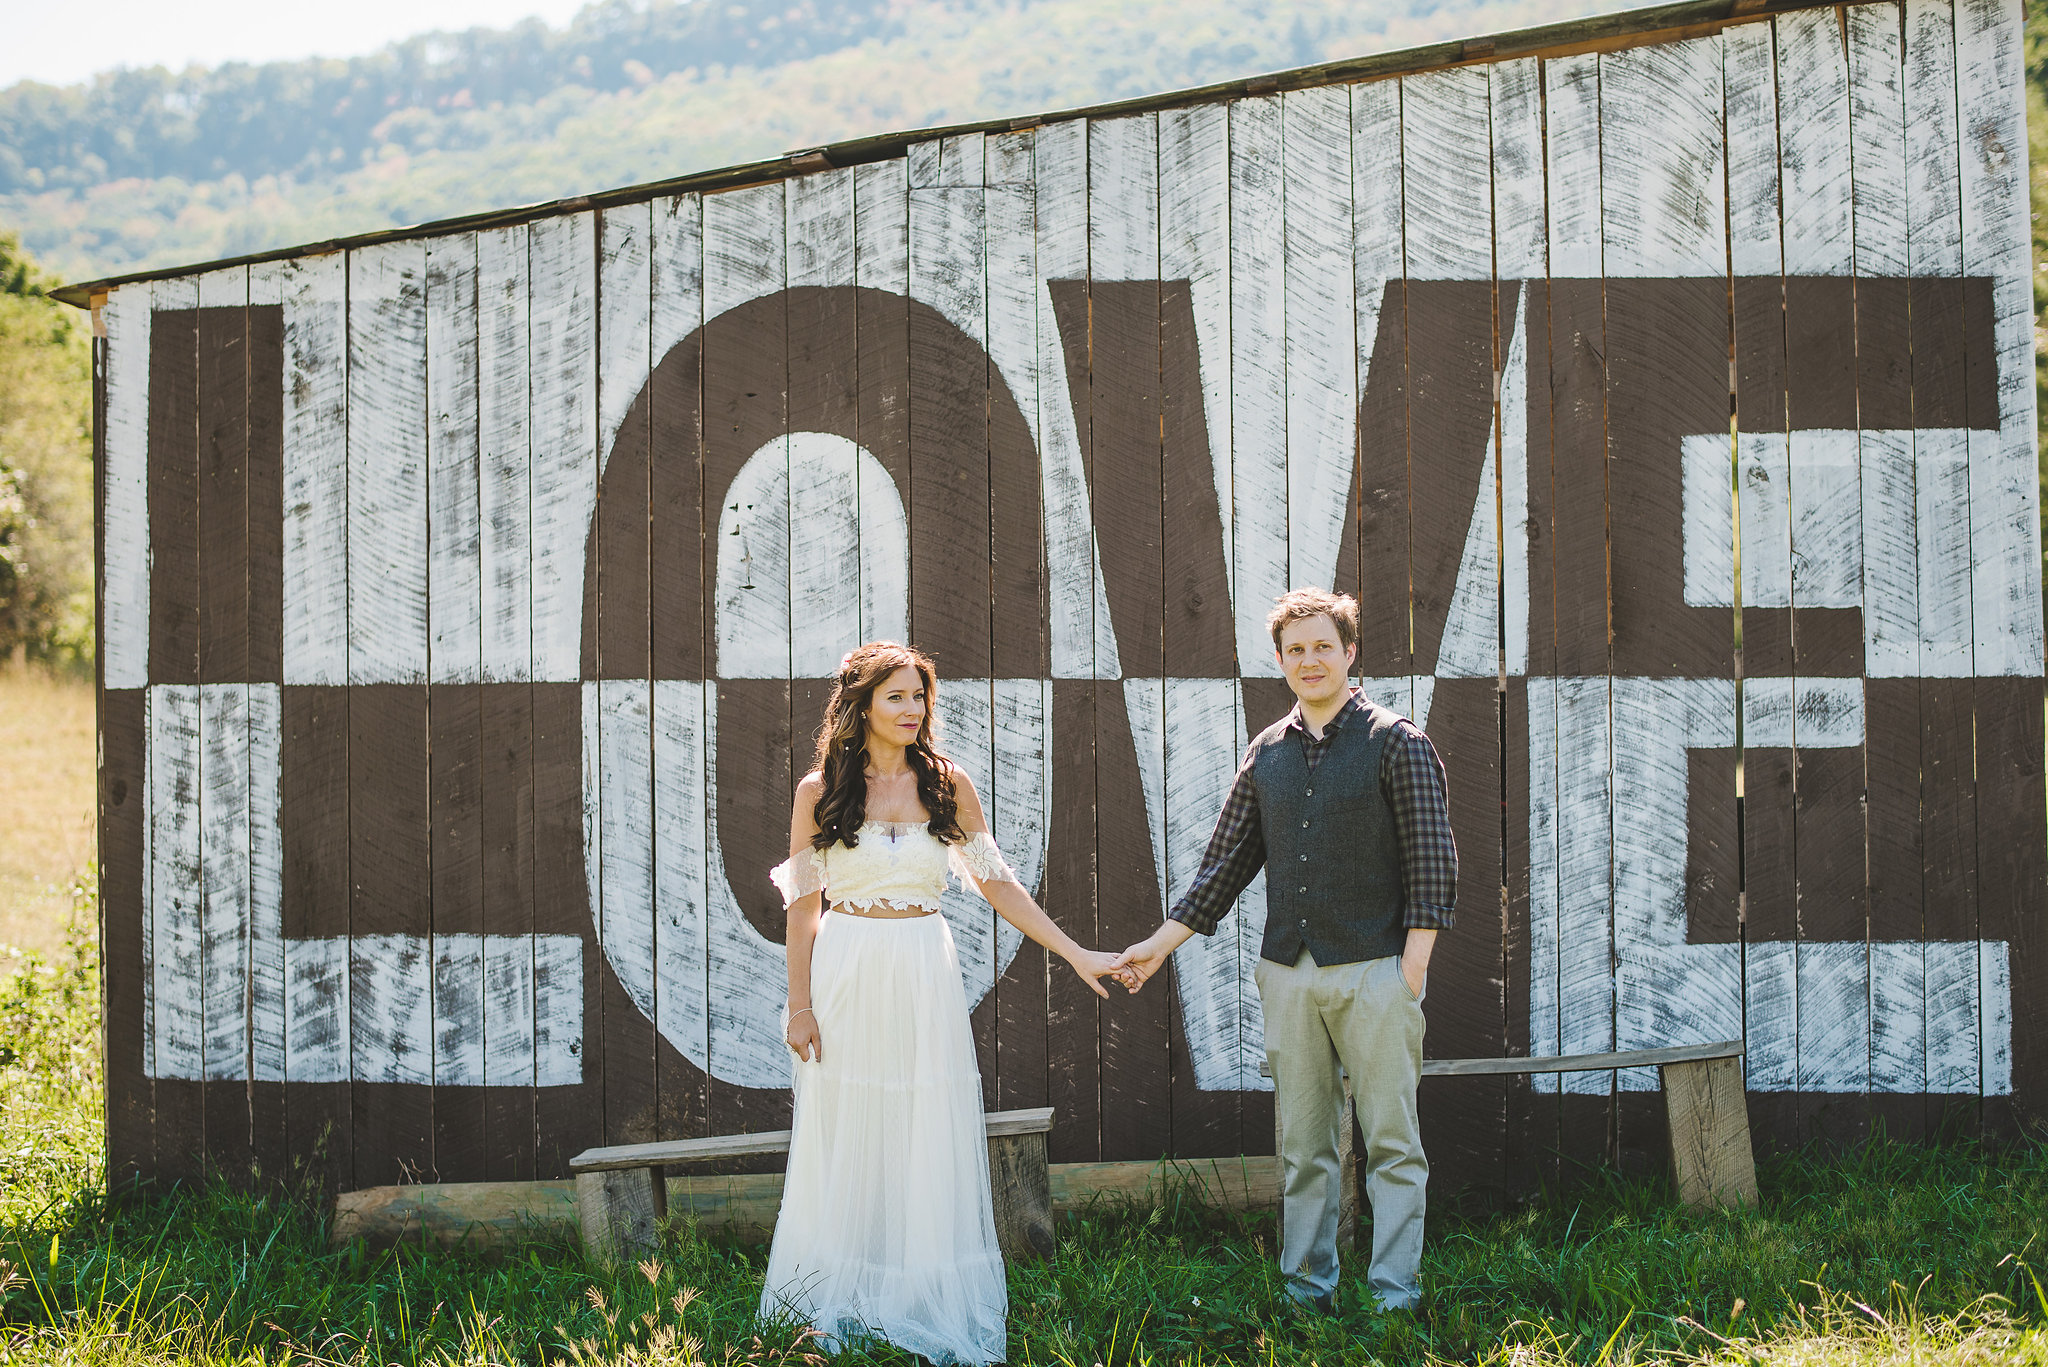 Summer farm wedding love barn